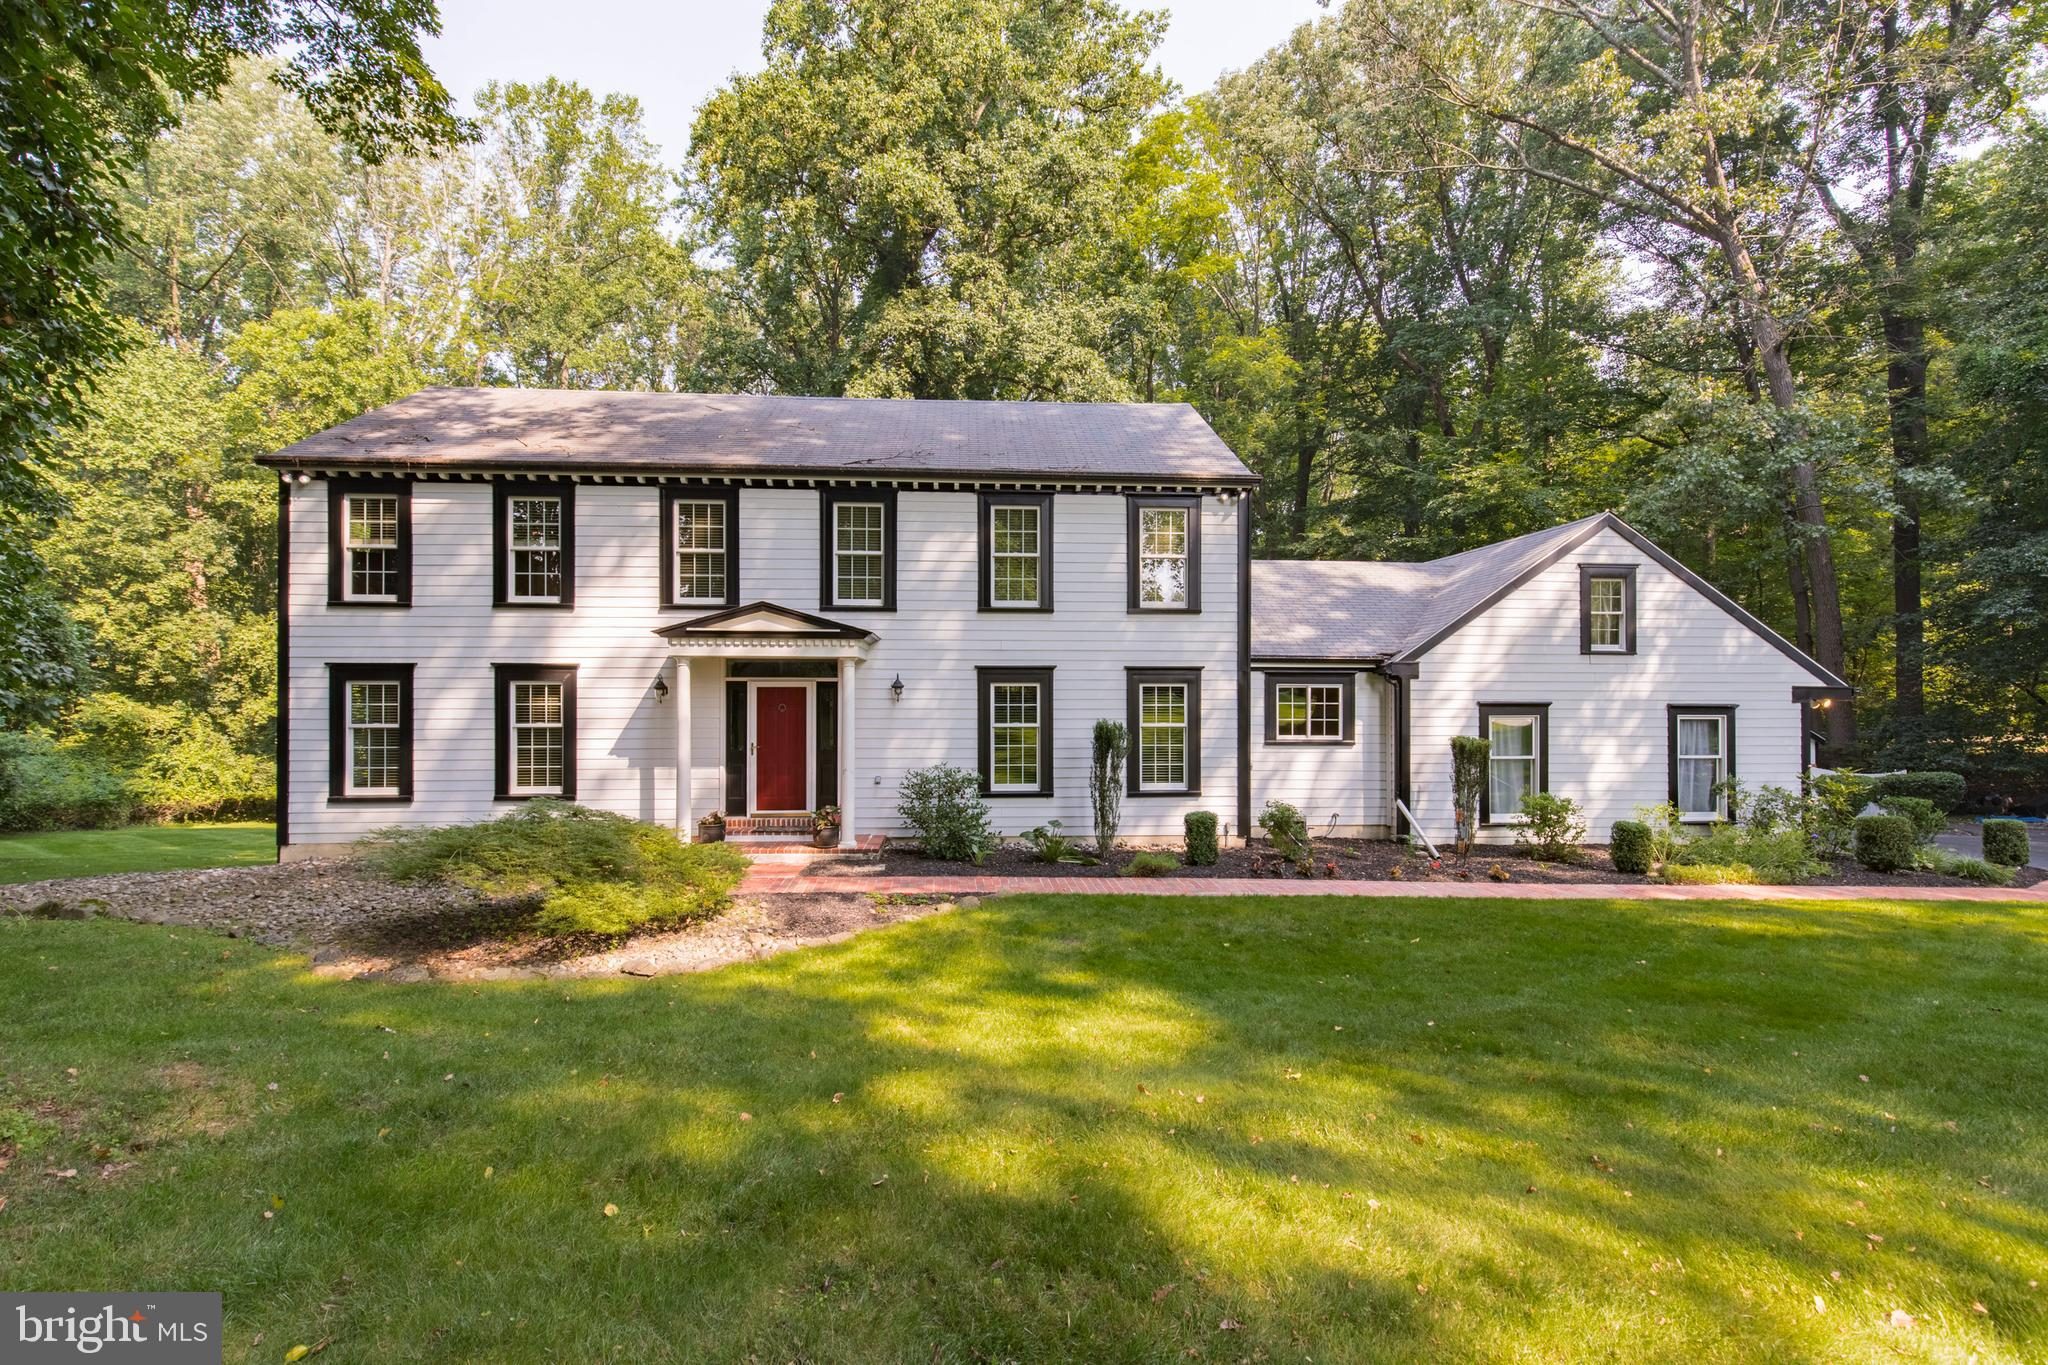 Stunning Penn Oaks Estate beauty.  Move in ready 4 bedroom, 3 1/2 bath home in the coveted neighborhood of Penn Oaks Estates. Greeted with brick paver driveway entrance, flanked by stone pillars with lights.  Mature landscaping and a brick paver walkway take you to the front door.  First floor has hardwood flooring the family and dining room are newly refinished. Two coat closets, a half bath with tile flooring and granite counter top vanity. Front to back living room, with a coffered ceiling and recessed lighting. Family room has a wood burning fireplace with brick surround  and oversized mantle. Another sliding door takes you to the 2 tier deck.The dining room has a new light fixture, crown moulding, coffered ceiling  and wainscoting. Eat in kitchen offers granite counters, cook top,  GE profile double ovens  and a touch free faucet. The sliding door leads out to the 2 tier deck and the fabulous back yard with an Anthony Sylvan pool.  Up the curved staircase takes you to the 4 bedrooms and hall bath. New carpeting on steps, hallway and primary bedroom. Large primary bedroom  has ceiling fan and recessed lighting, the  primary bathroom has a  3 sided shower, soaking tub, dual vanities with Corian counters and custom cabinet also with Corian. Three other bedrooms all have exposed hardwood, ceiling fans and ample closet space. The finished, walk out lower level has new carpeting, work out area and another family room, full bathroom with tile and a walk in shower, which is great when coming in from the pool area. Corian counter with sink and fridge. Large storage area completes the lower level. Home has been freshly painted in neutral colors, most of the windows have been replaced with Renewal by Andersen windows and sliders.   Hardi plank siding, Enjoy your summers in the Anthony Sylvan pool. This home is a winner!